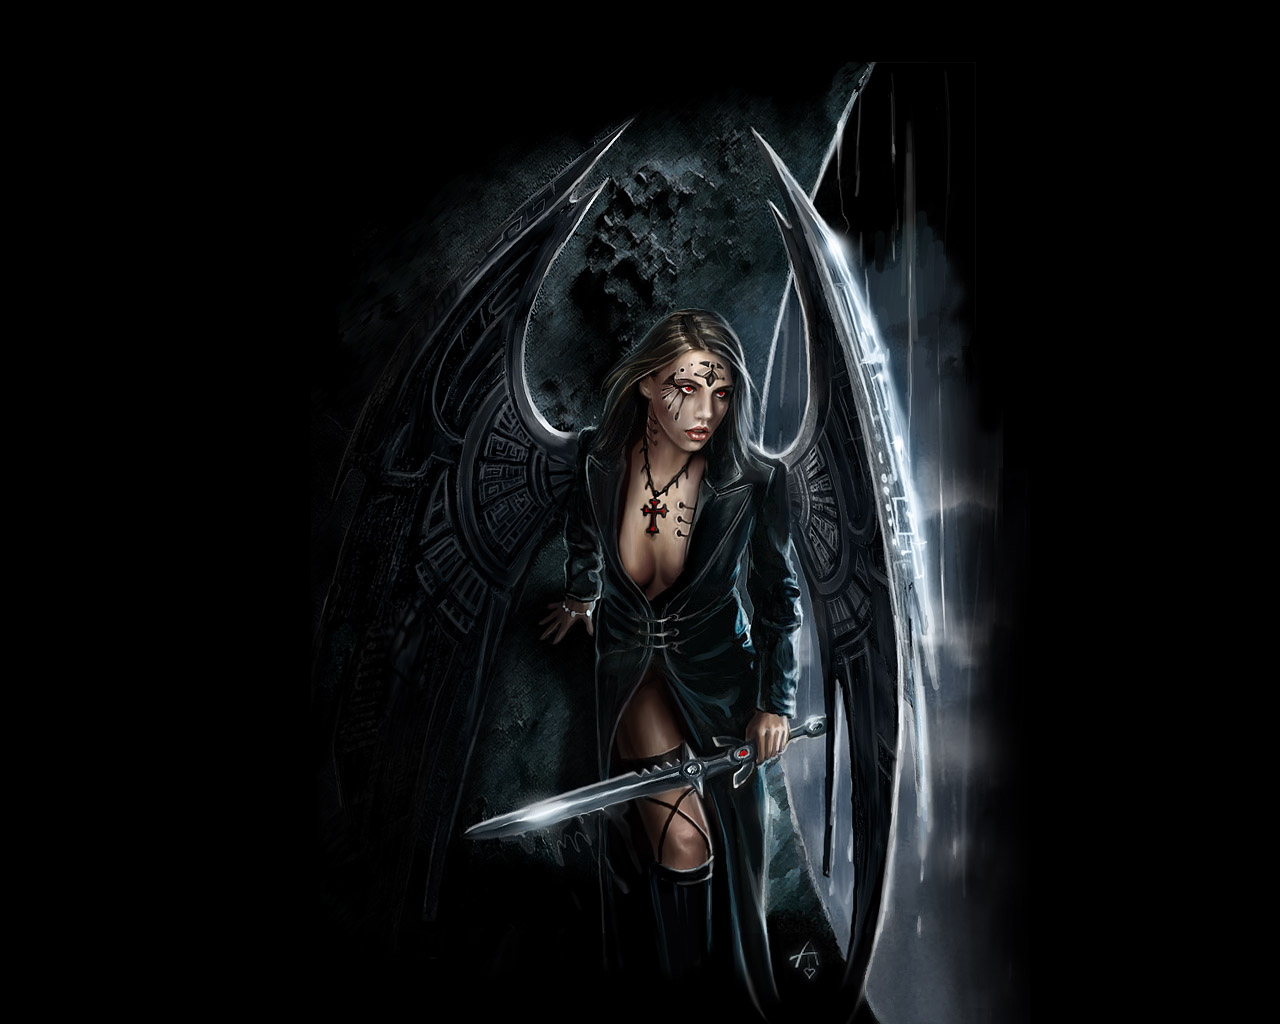 Gothic Dark Wallpapers   Download Dark Gothic Backgrounds 1280x1024